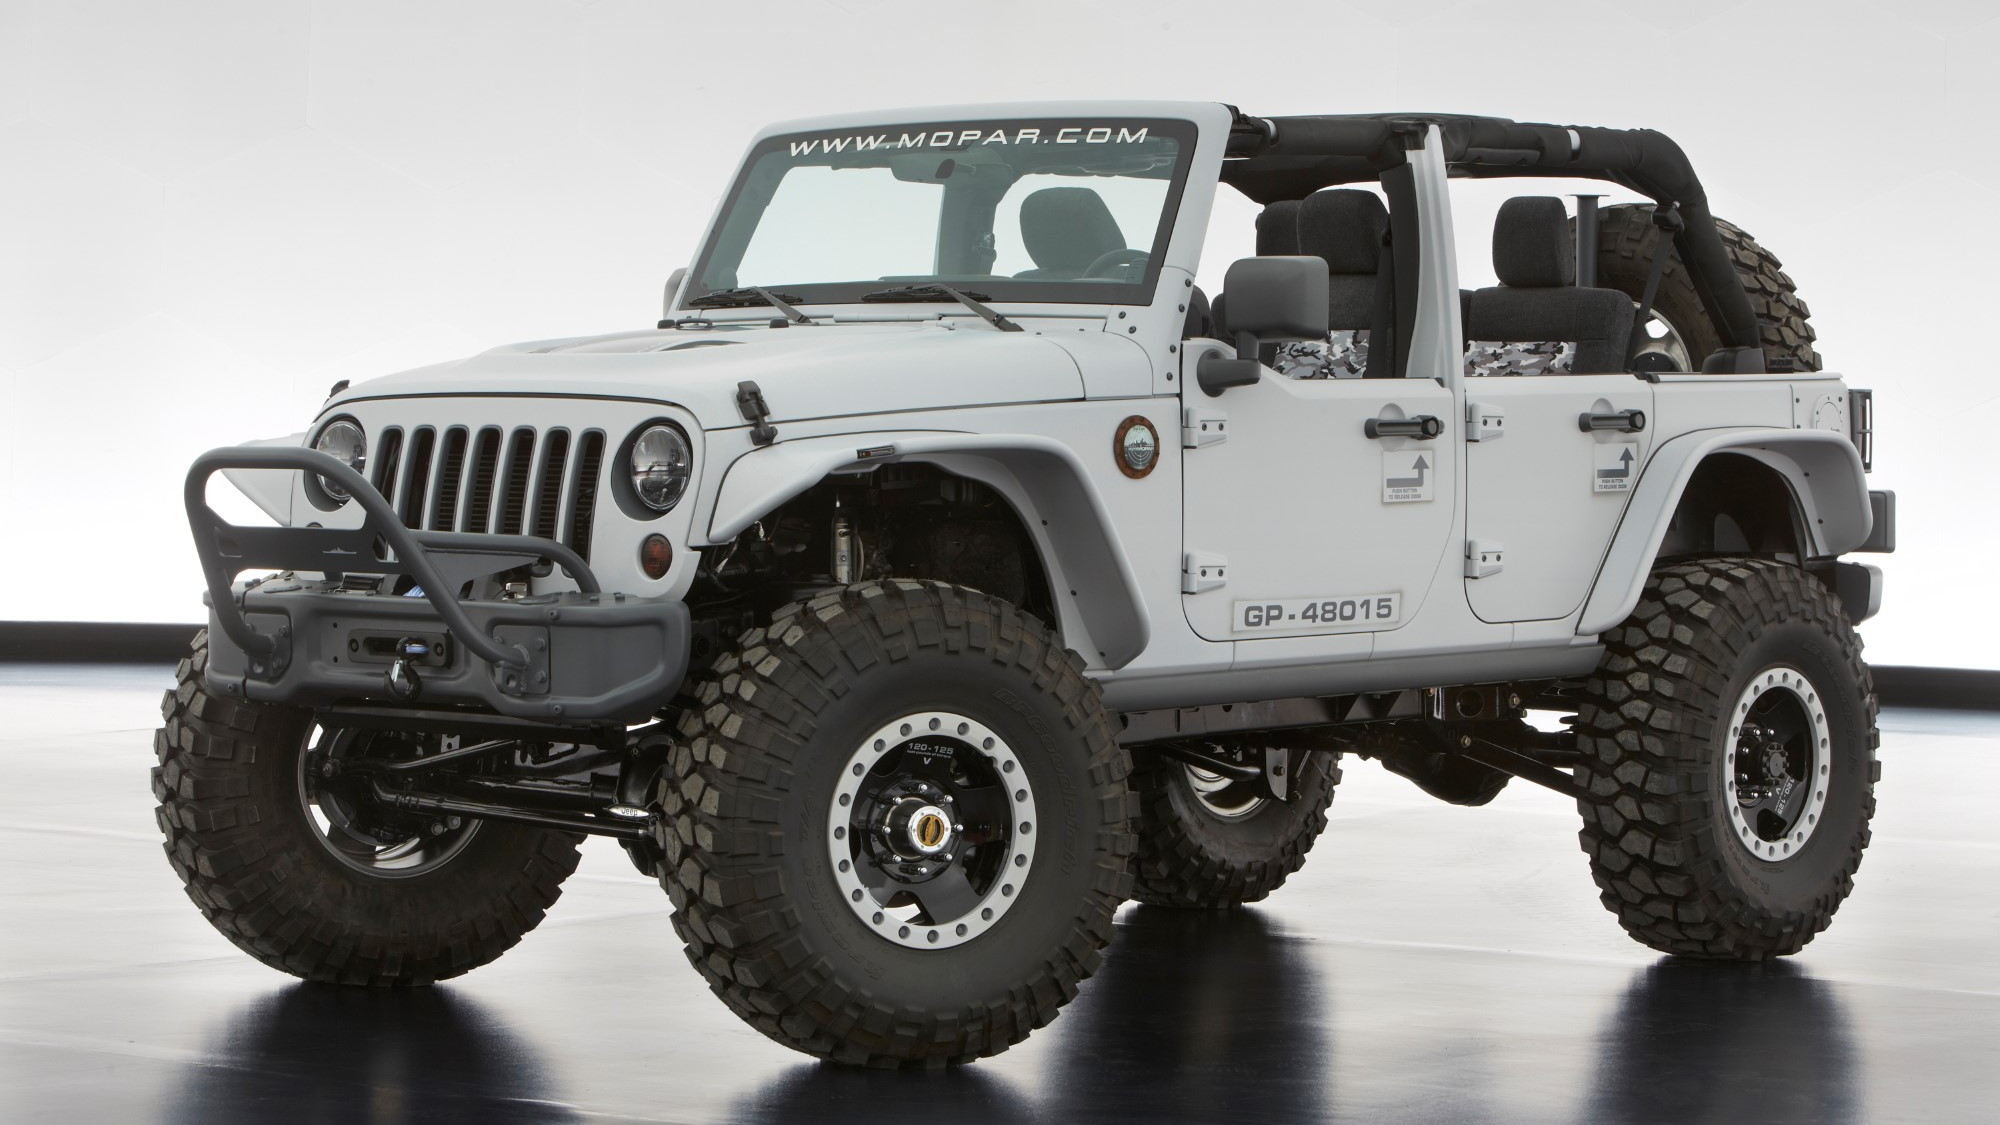 Jeep Wrangler Mopar Recon, 2013 Moab Easter Jeep Safari Concept